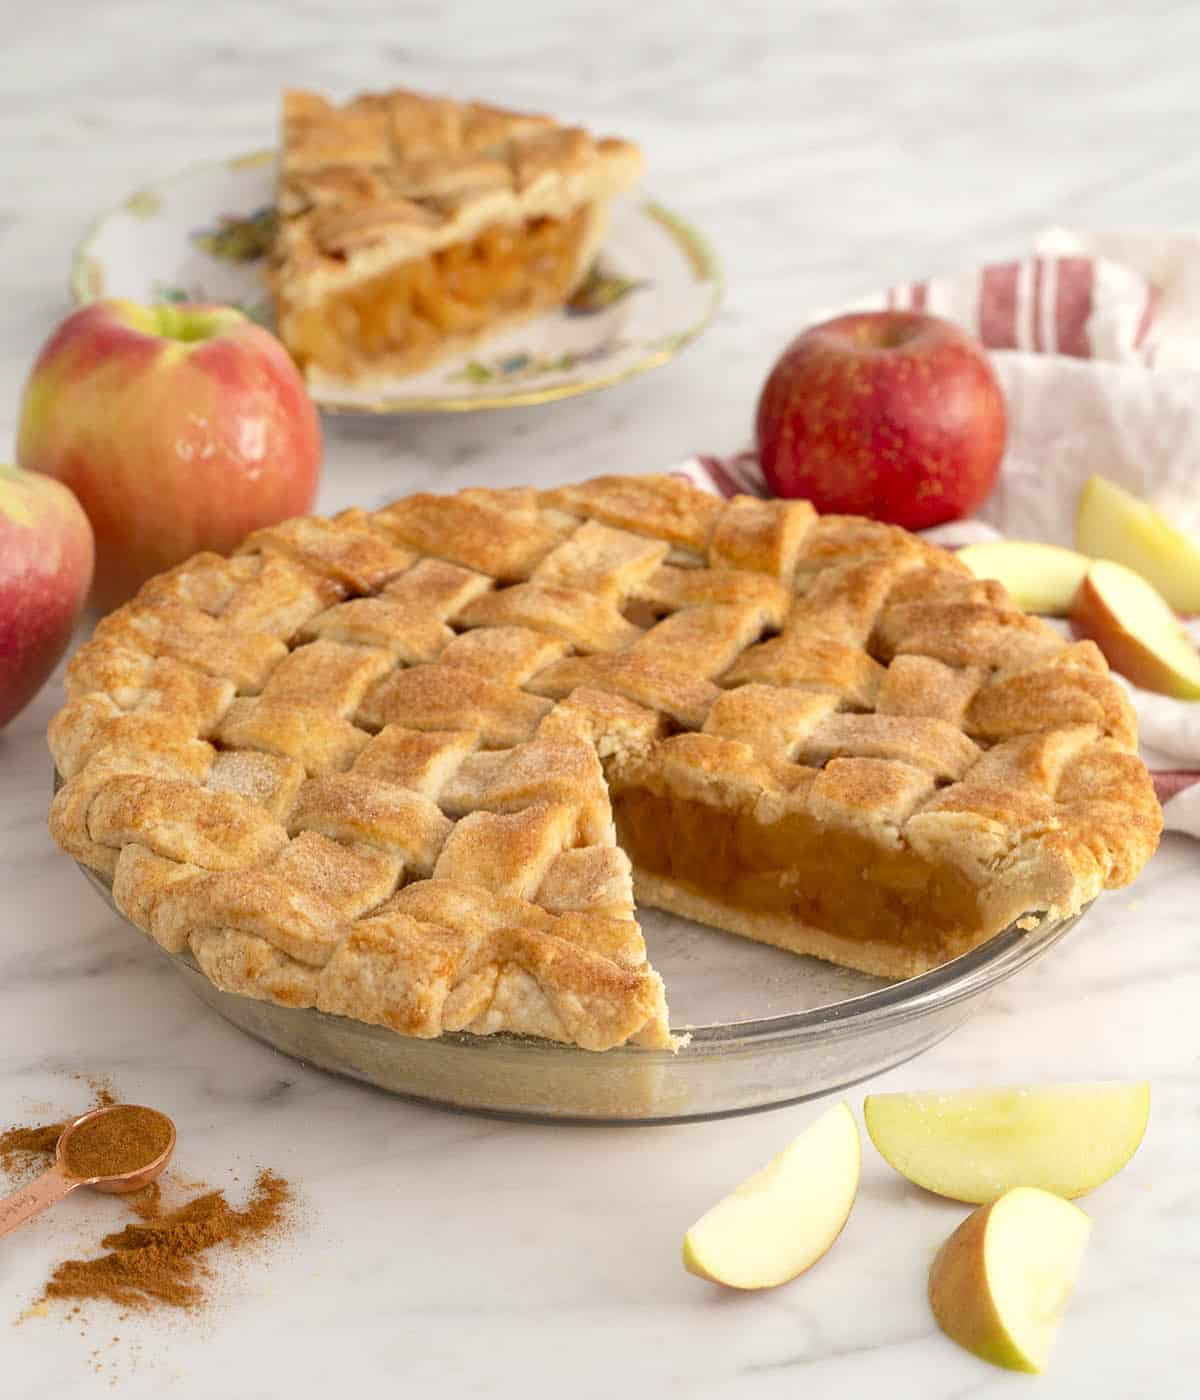 An apple pie with a piece cut out on a small plate.